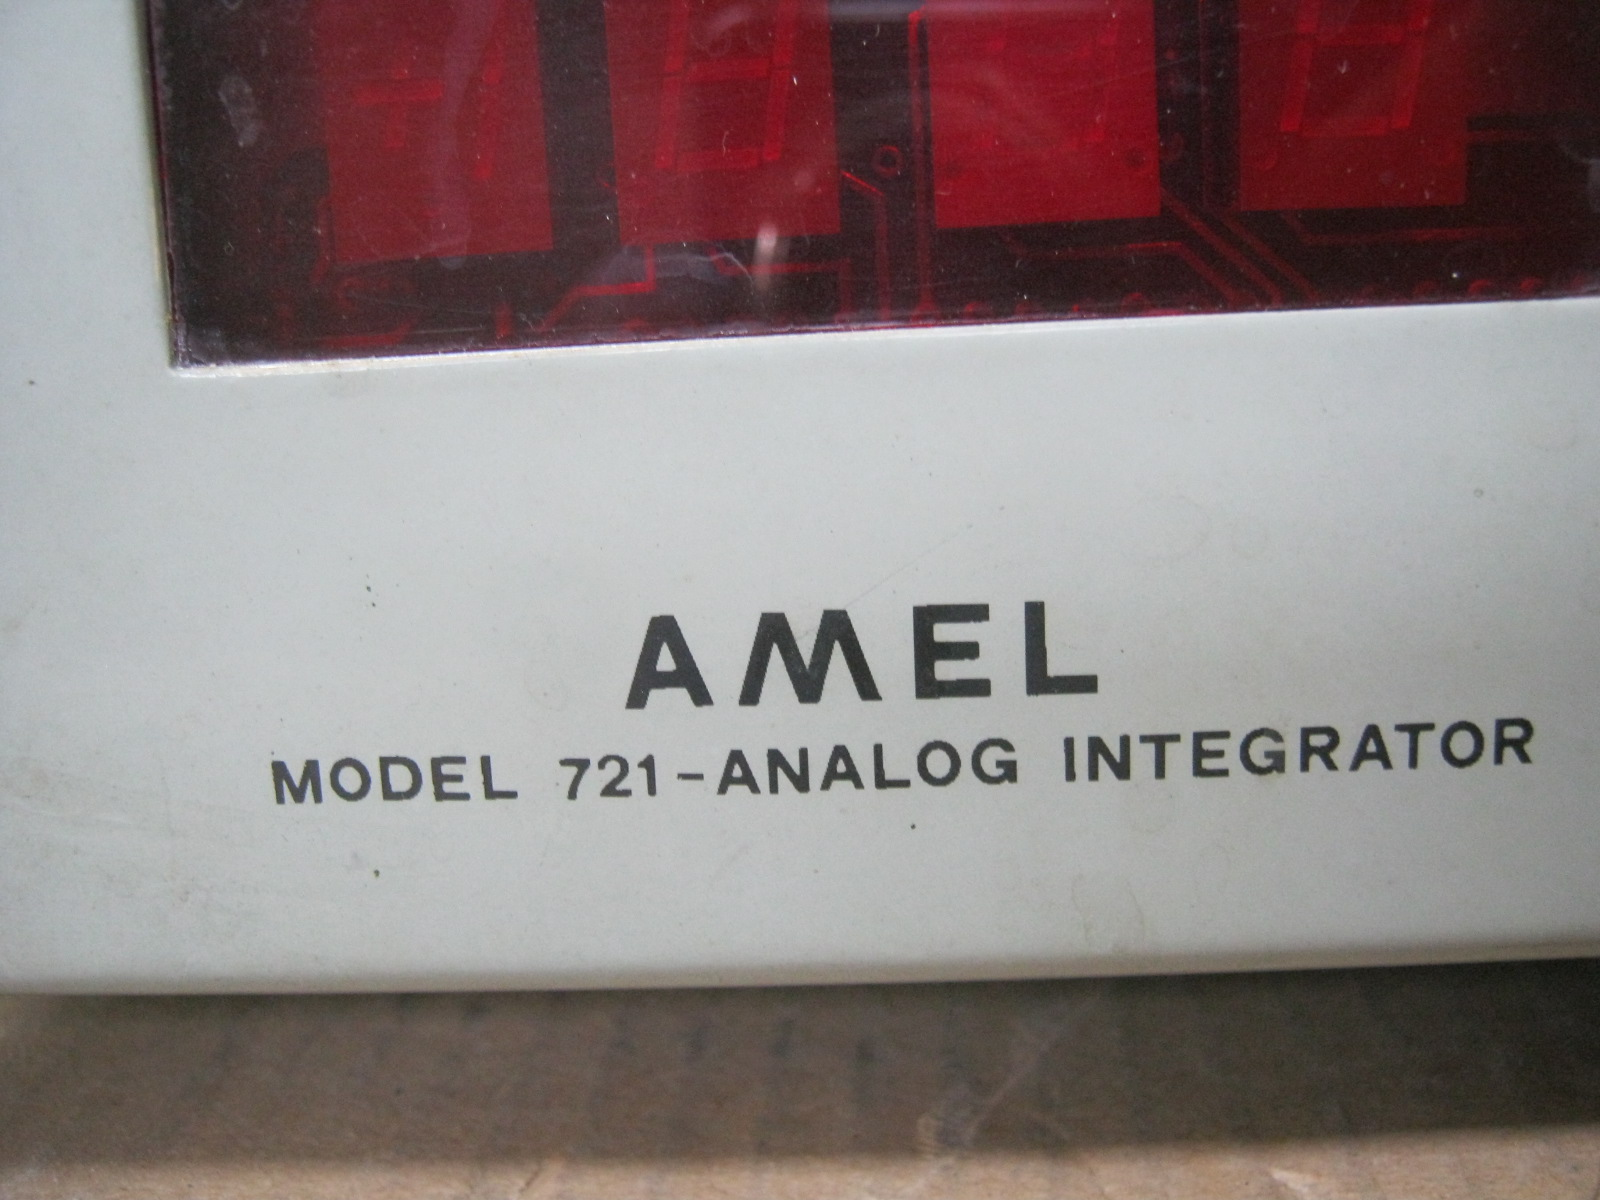 http://museodelcomputer.org/parts/a/amel/721/IMG_0832.JPG